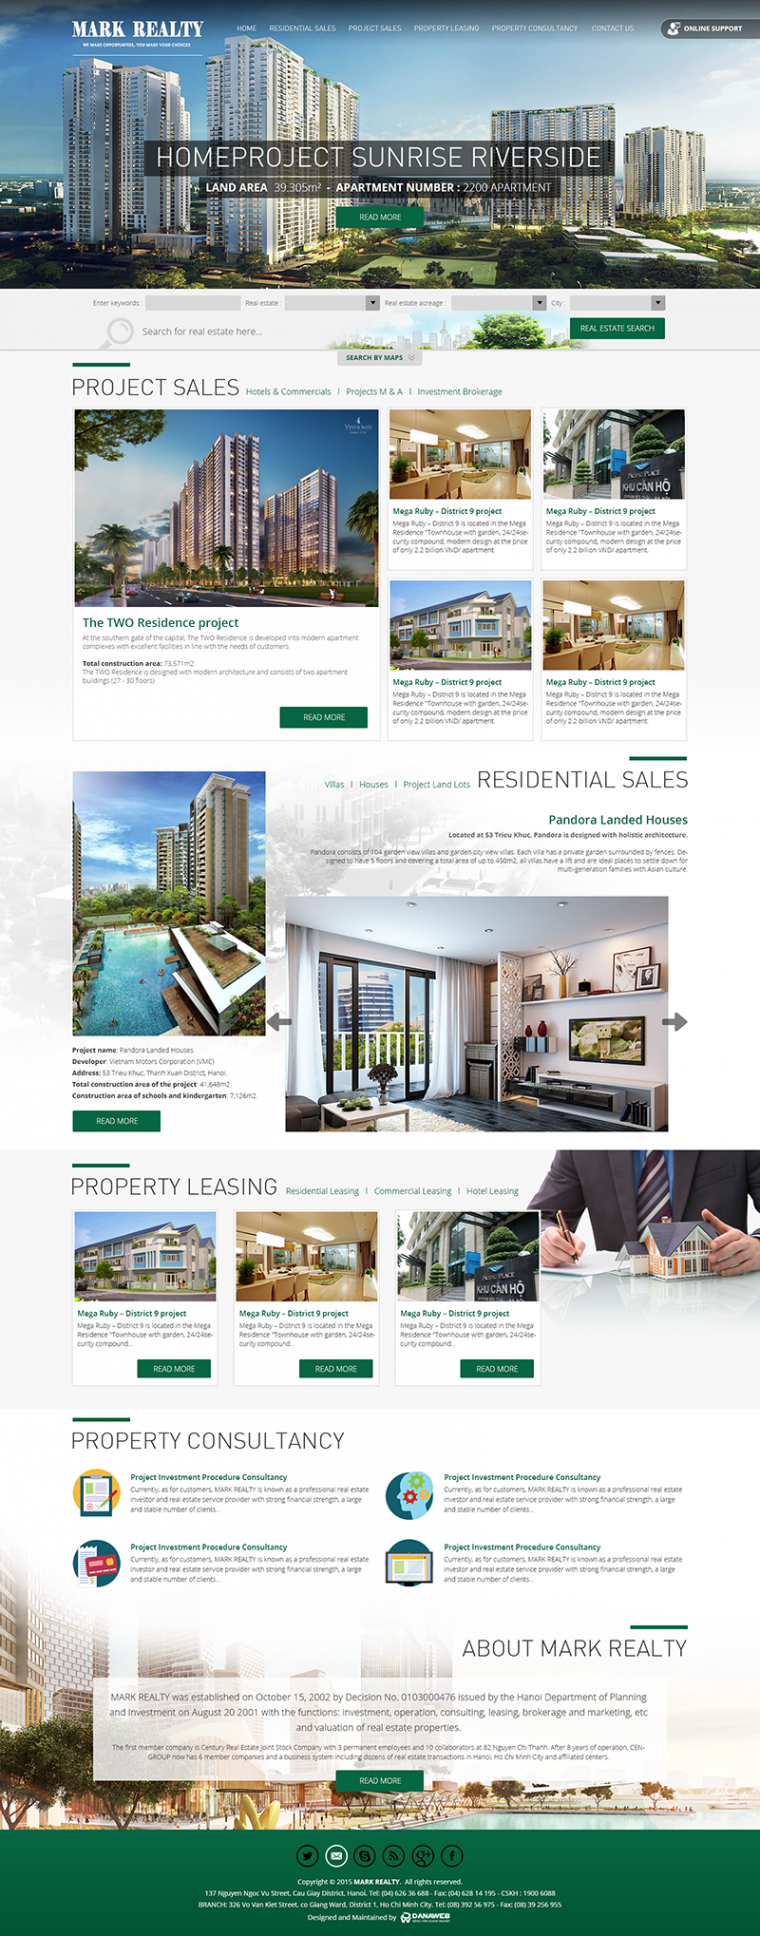 Mark Realty Danang